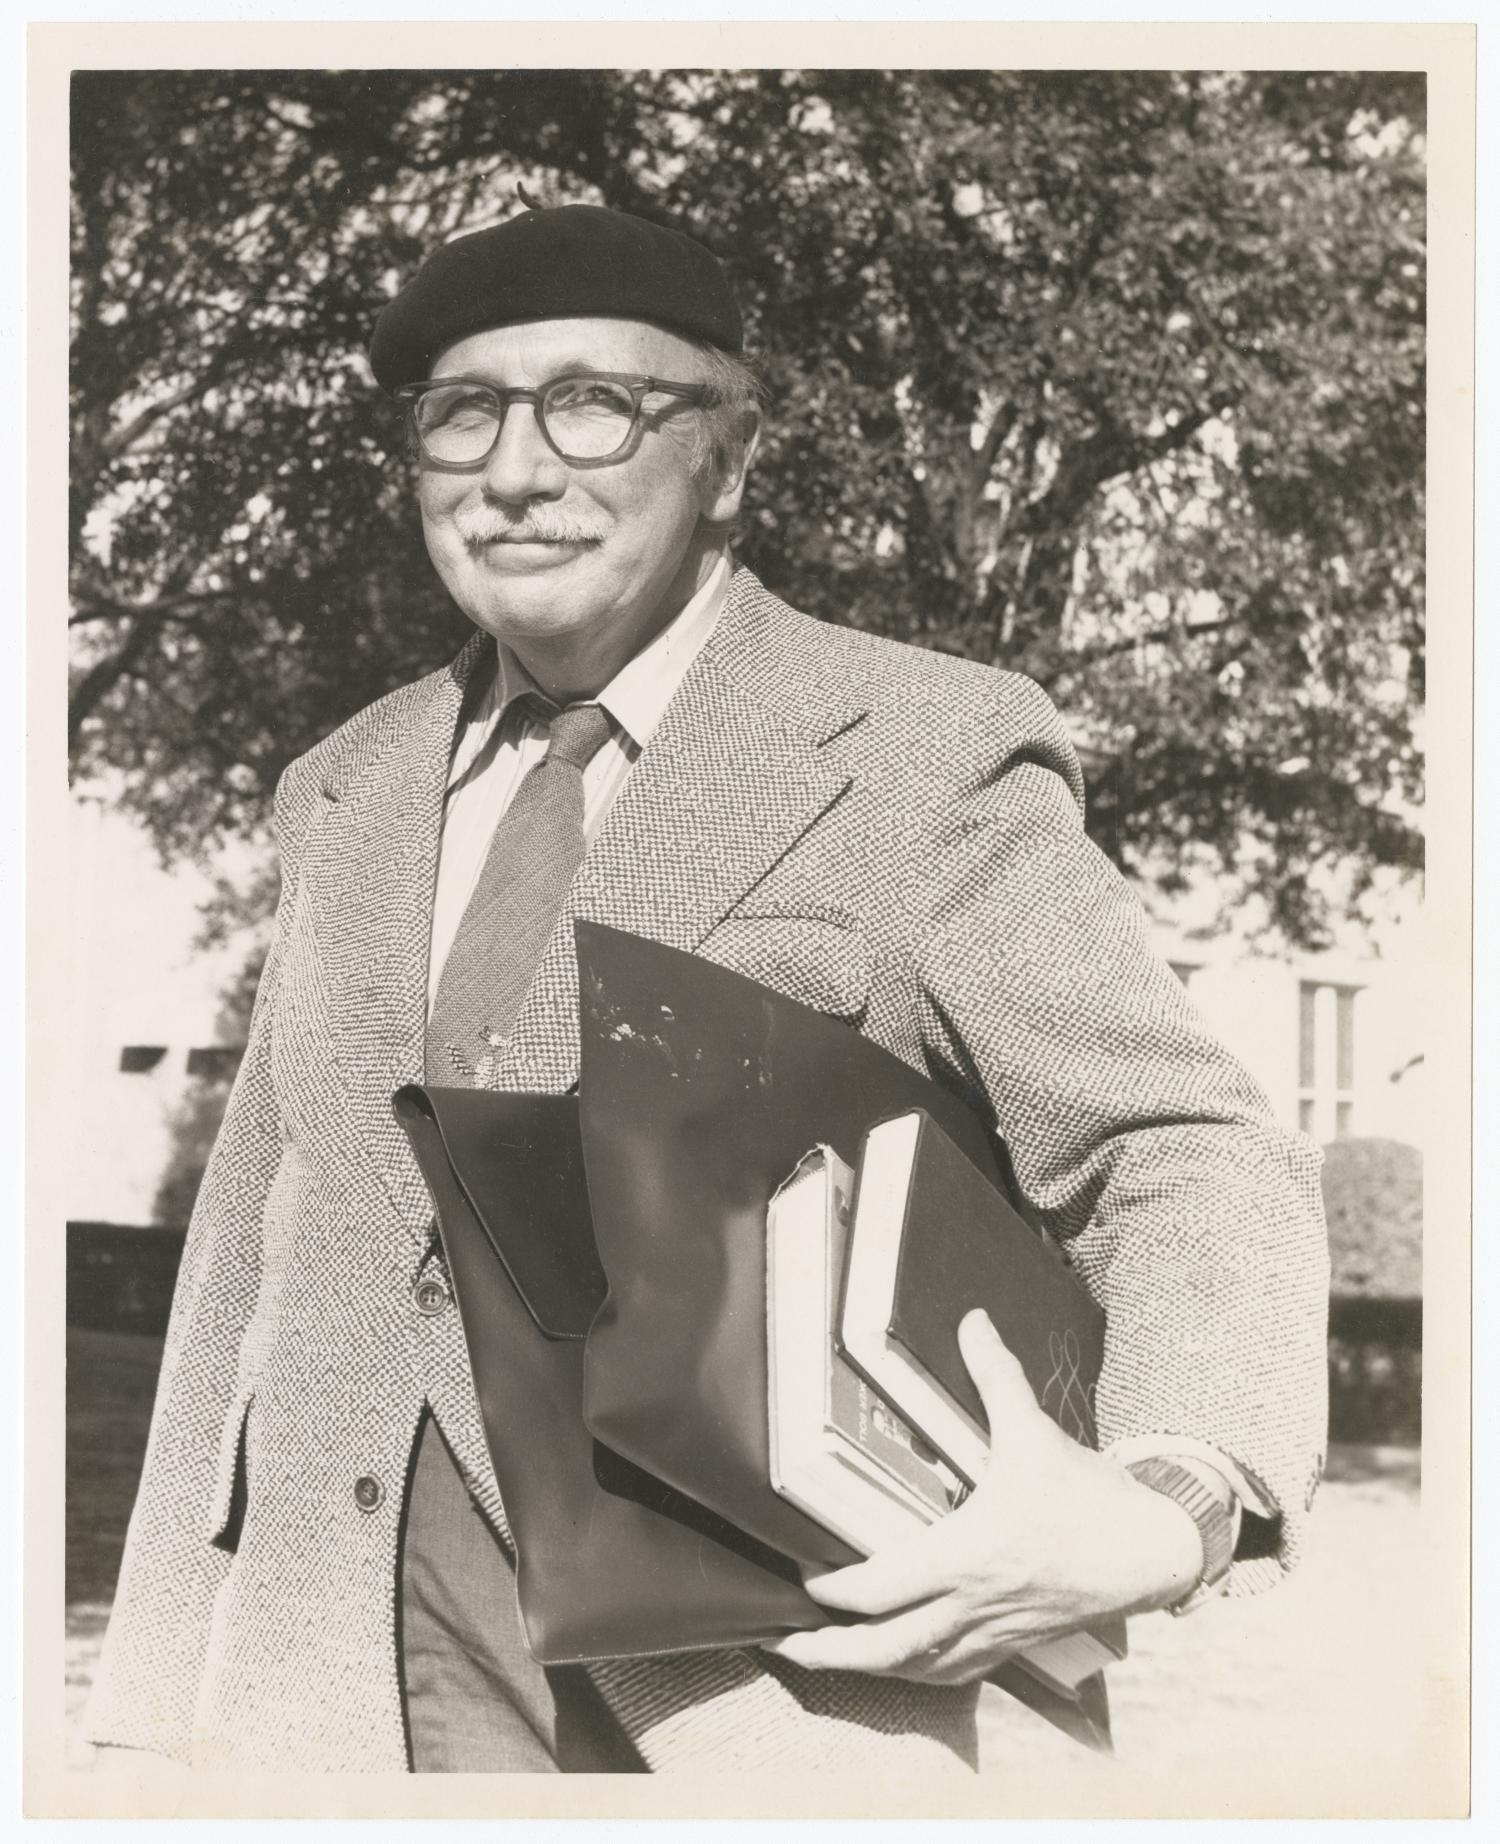 black and white photo of an older man from waist up standing outside holding books and folders in one hand. He wears a blazer, tie, large glasses, and a black beret.